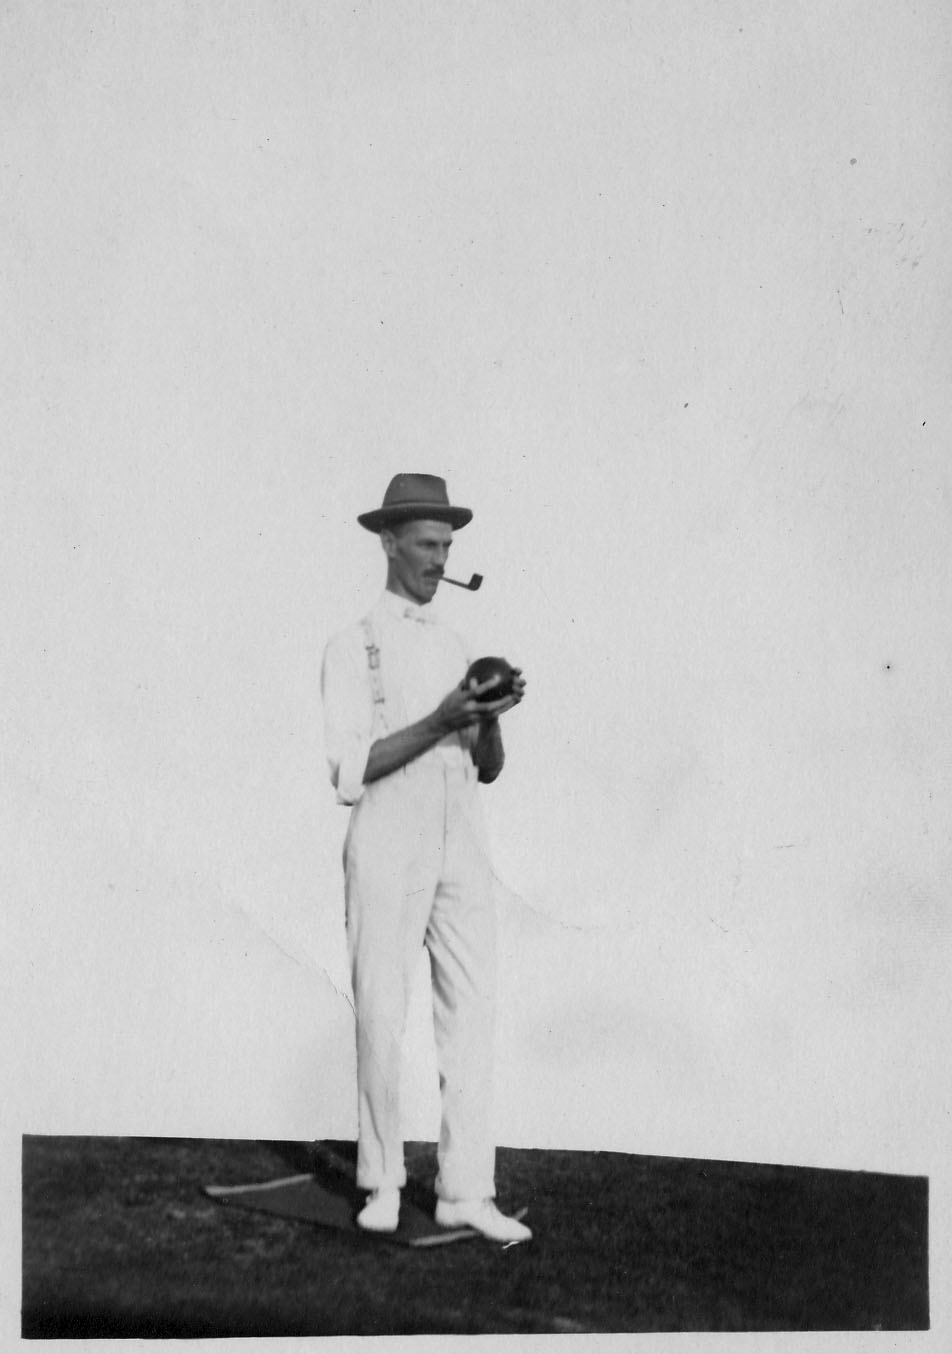 One of many sports that S. C. Young enjoyed was lawn bowls. Courtesy of Peta Catto/Young collection